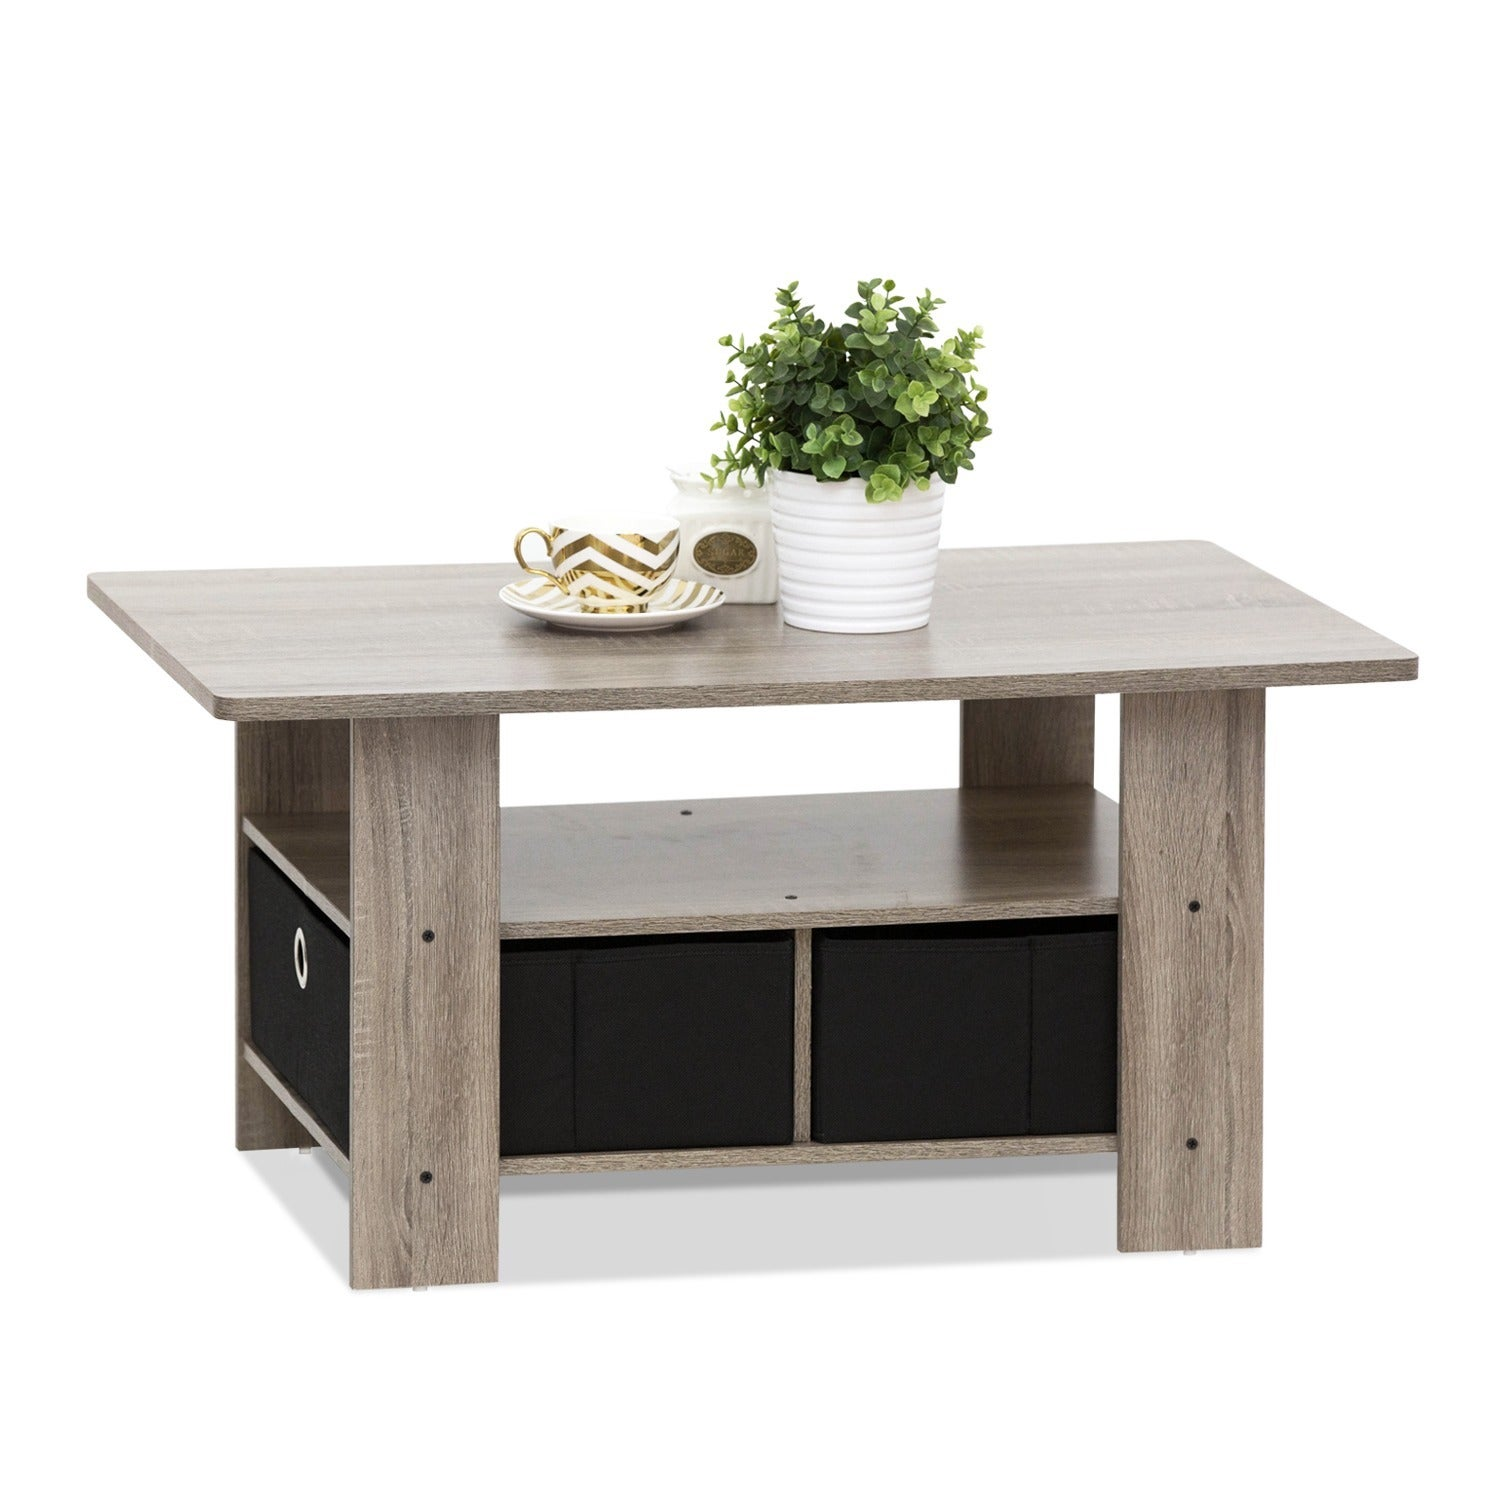 Pine Canopy Mendocino Coffee Table with Bin Drawer Free Shipping